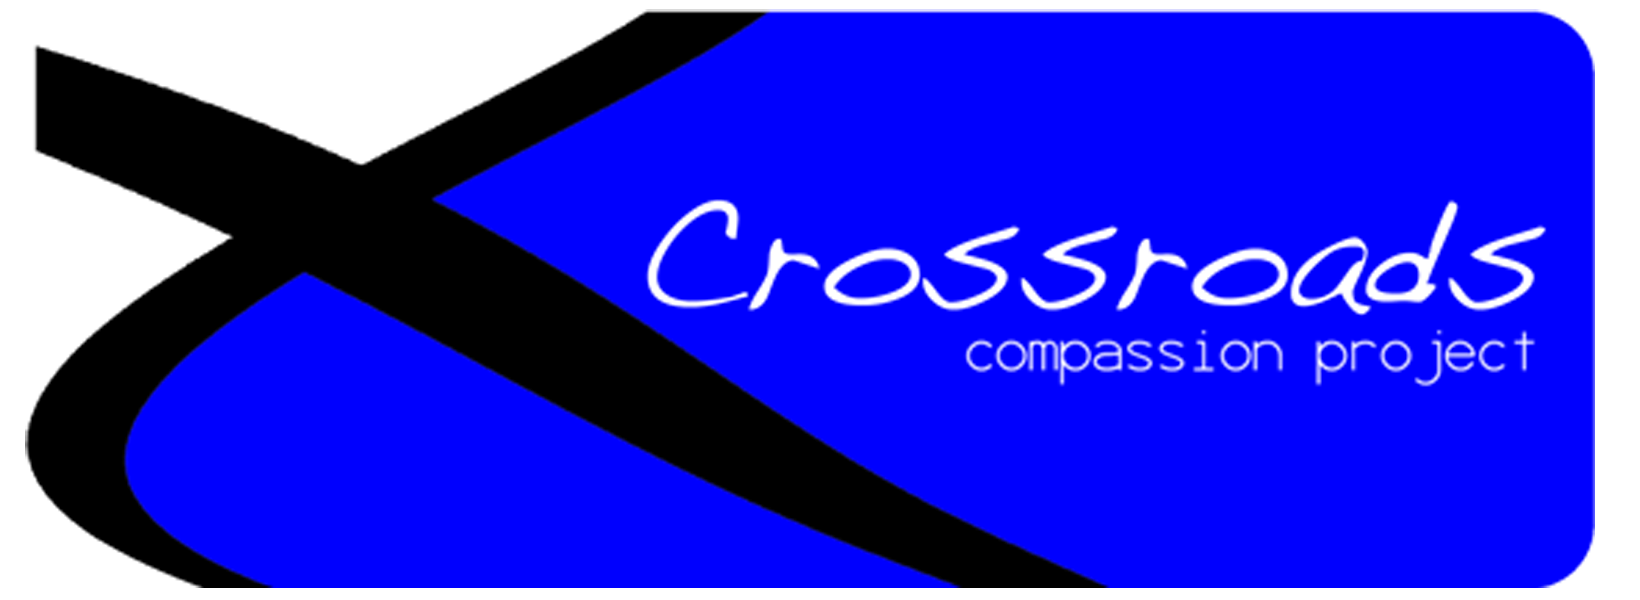 Crossroads Compassion Project